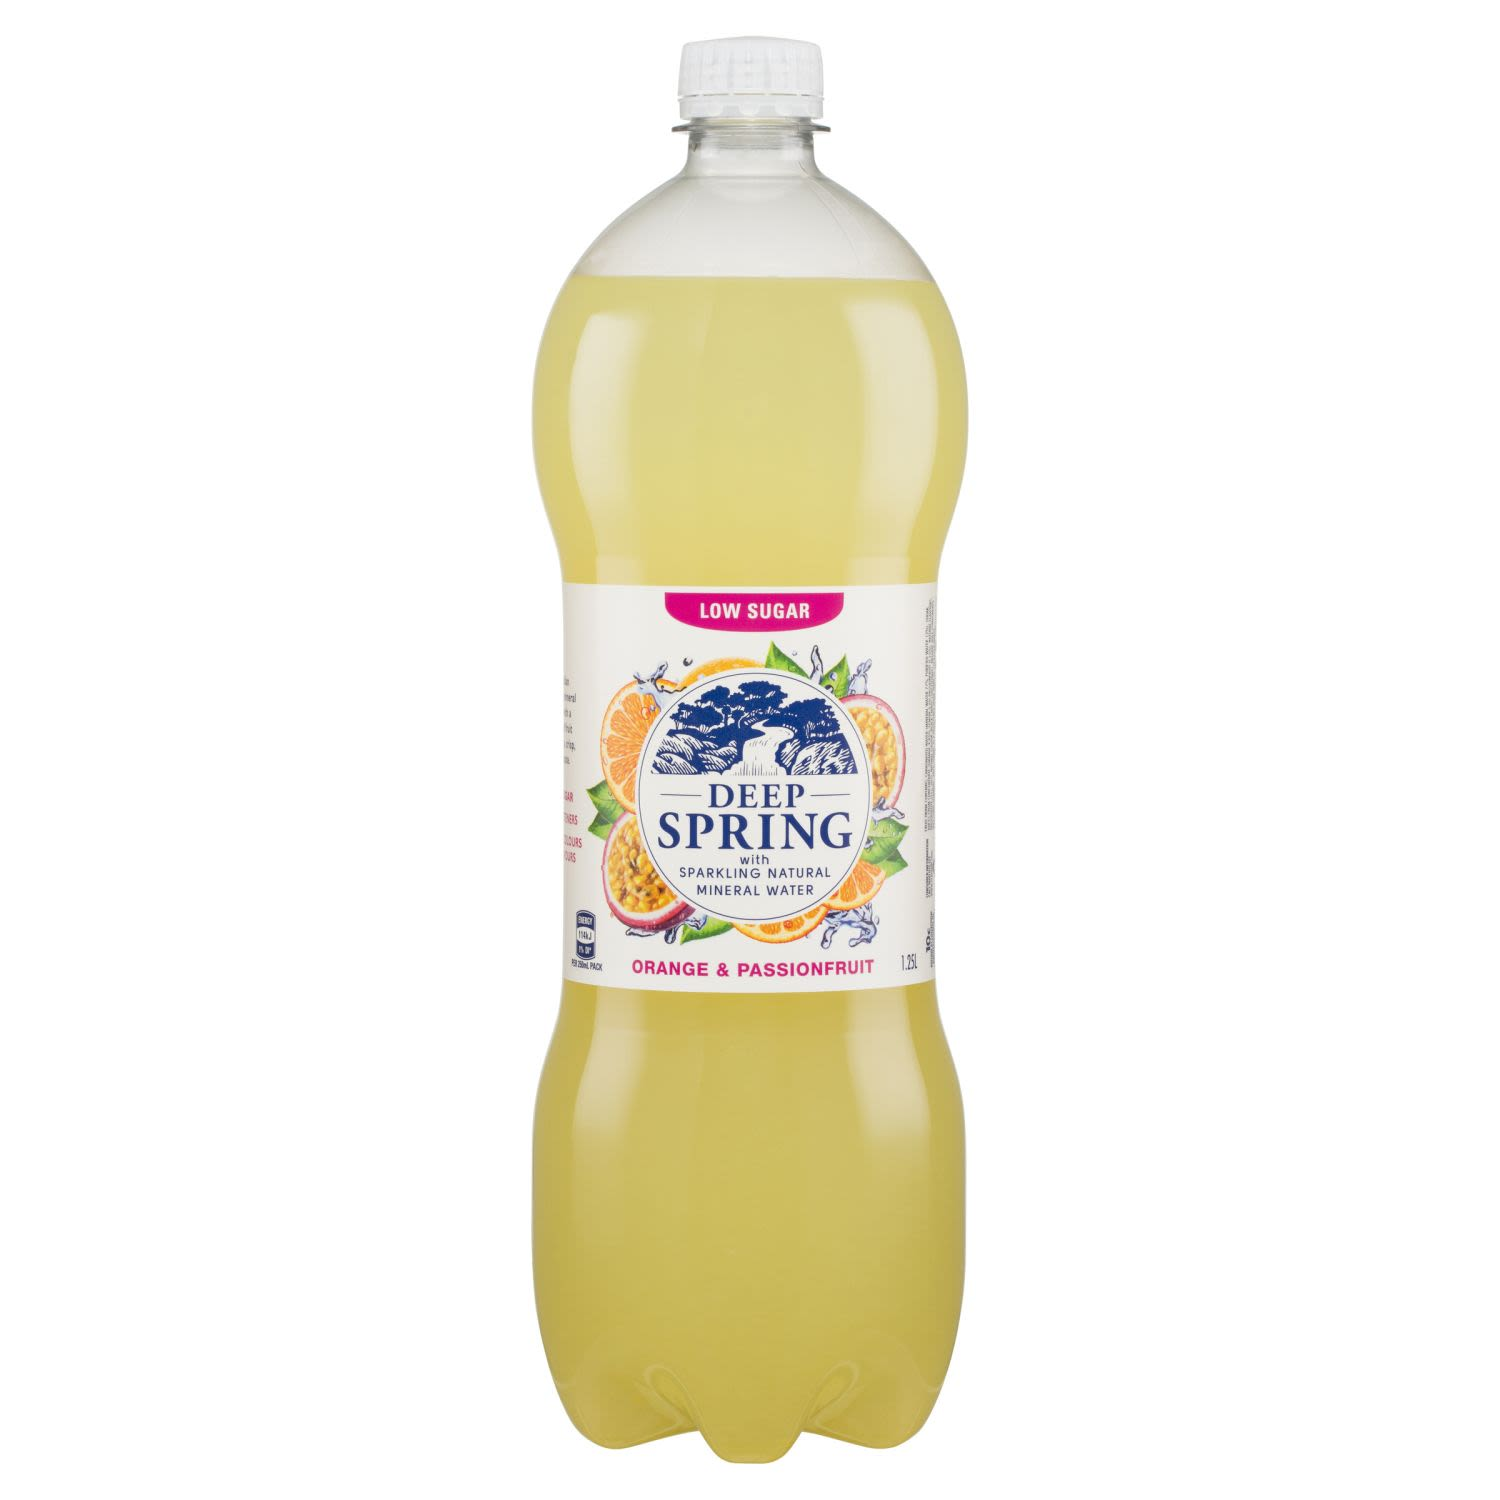 Deep Spring With Sparkling Natural Mineral Water Orange & Passionfruit, 1.25 Litre